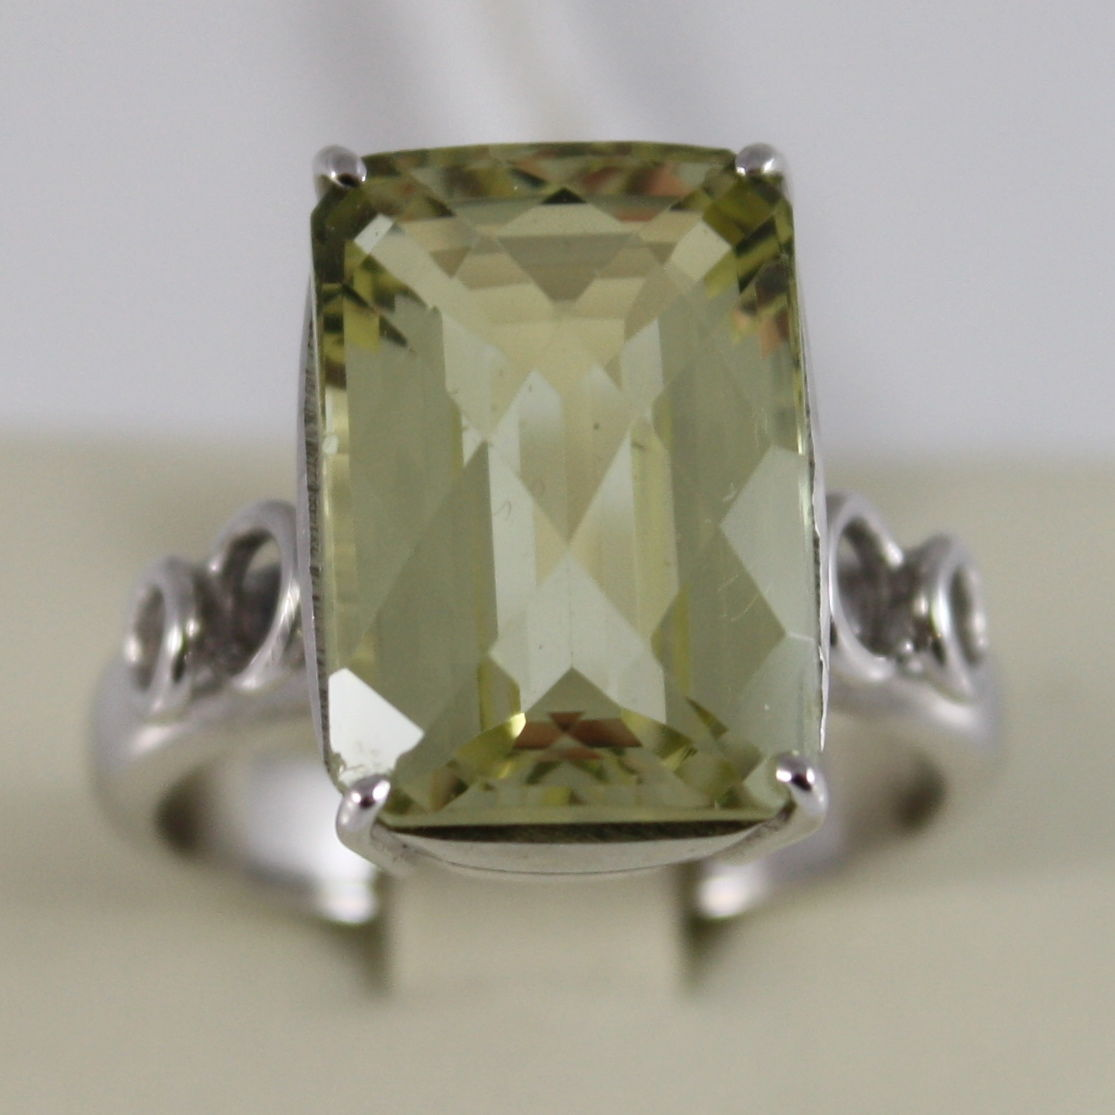 18K WHITE GOLD AND BIG LEMON QUARTZ RING MADE IN ITALY CARATS 9.5 CUSCION CUT